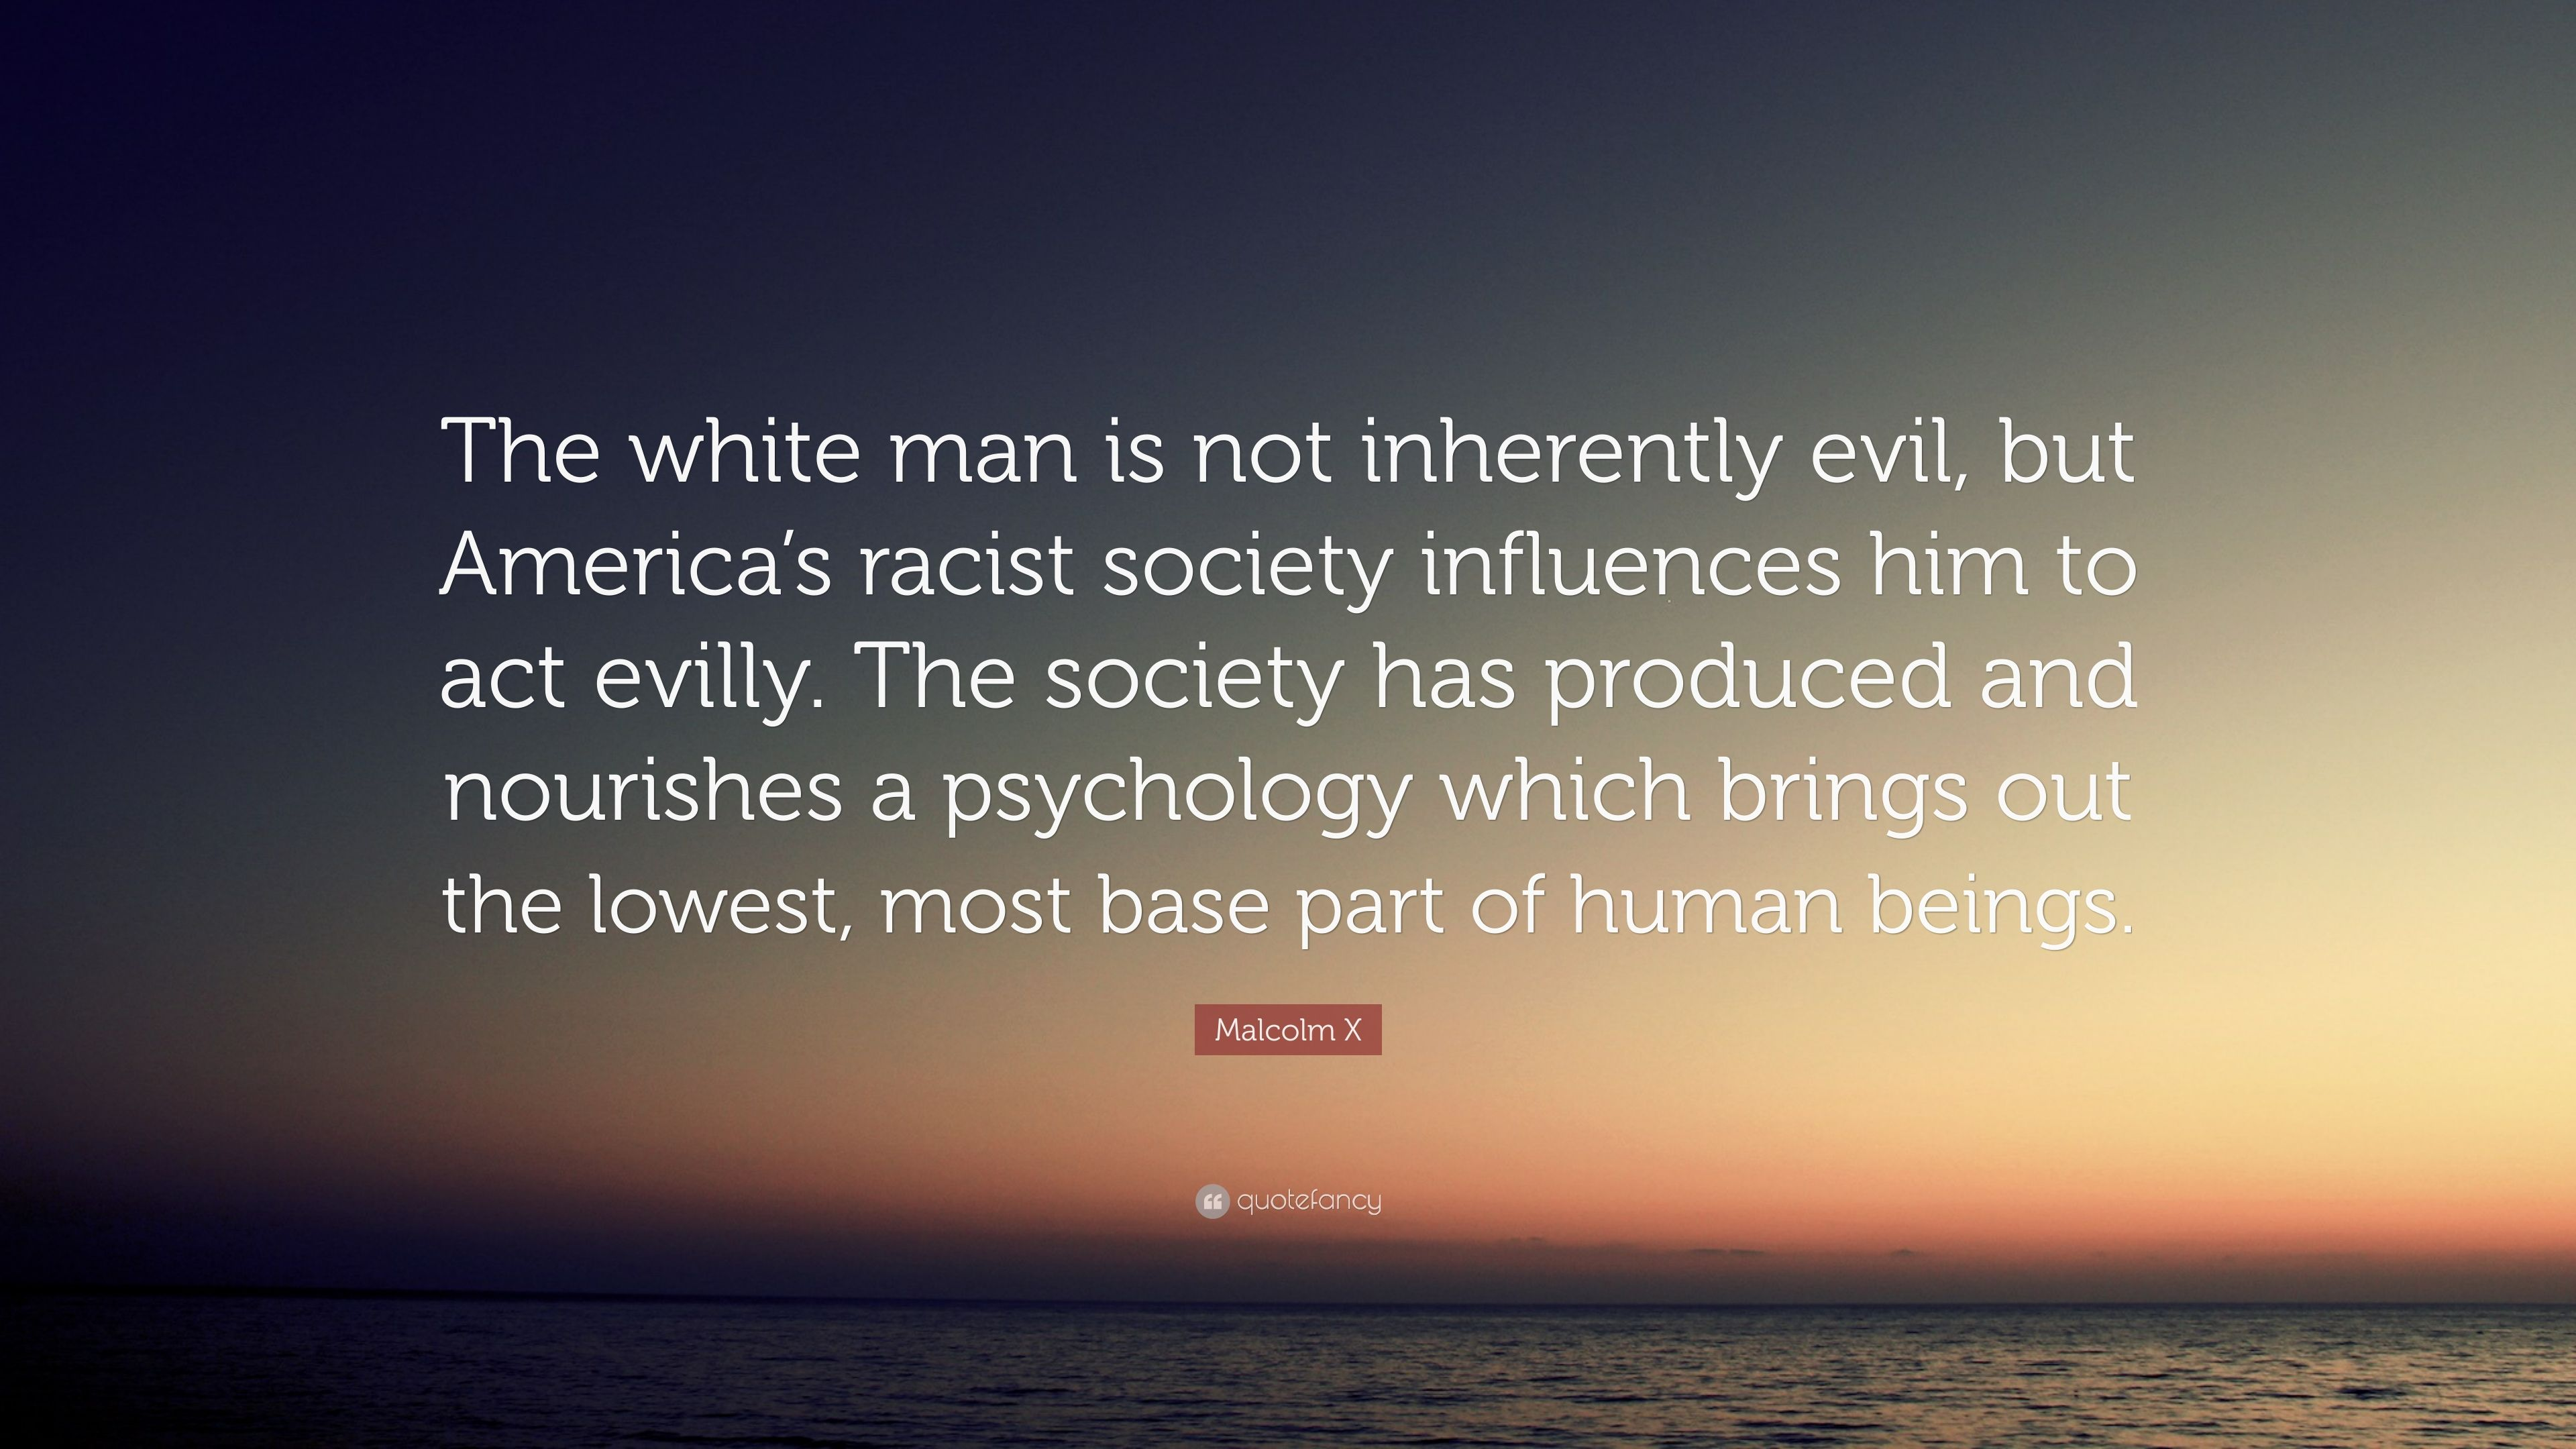 Is Mankind Inherently Good or Evil?